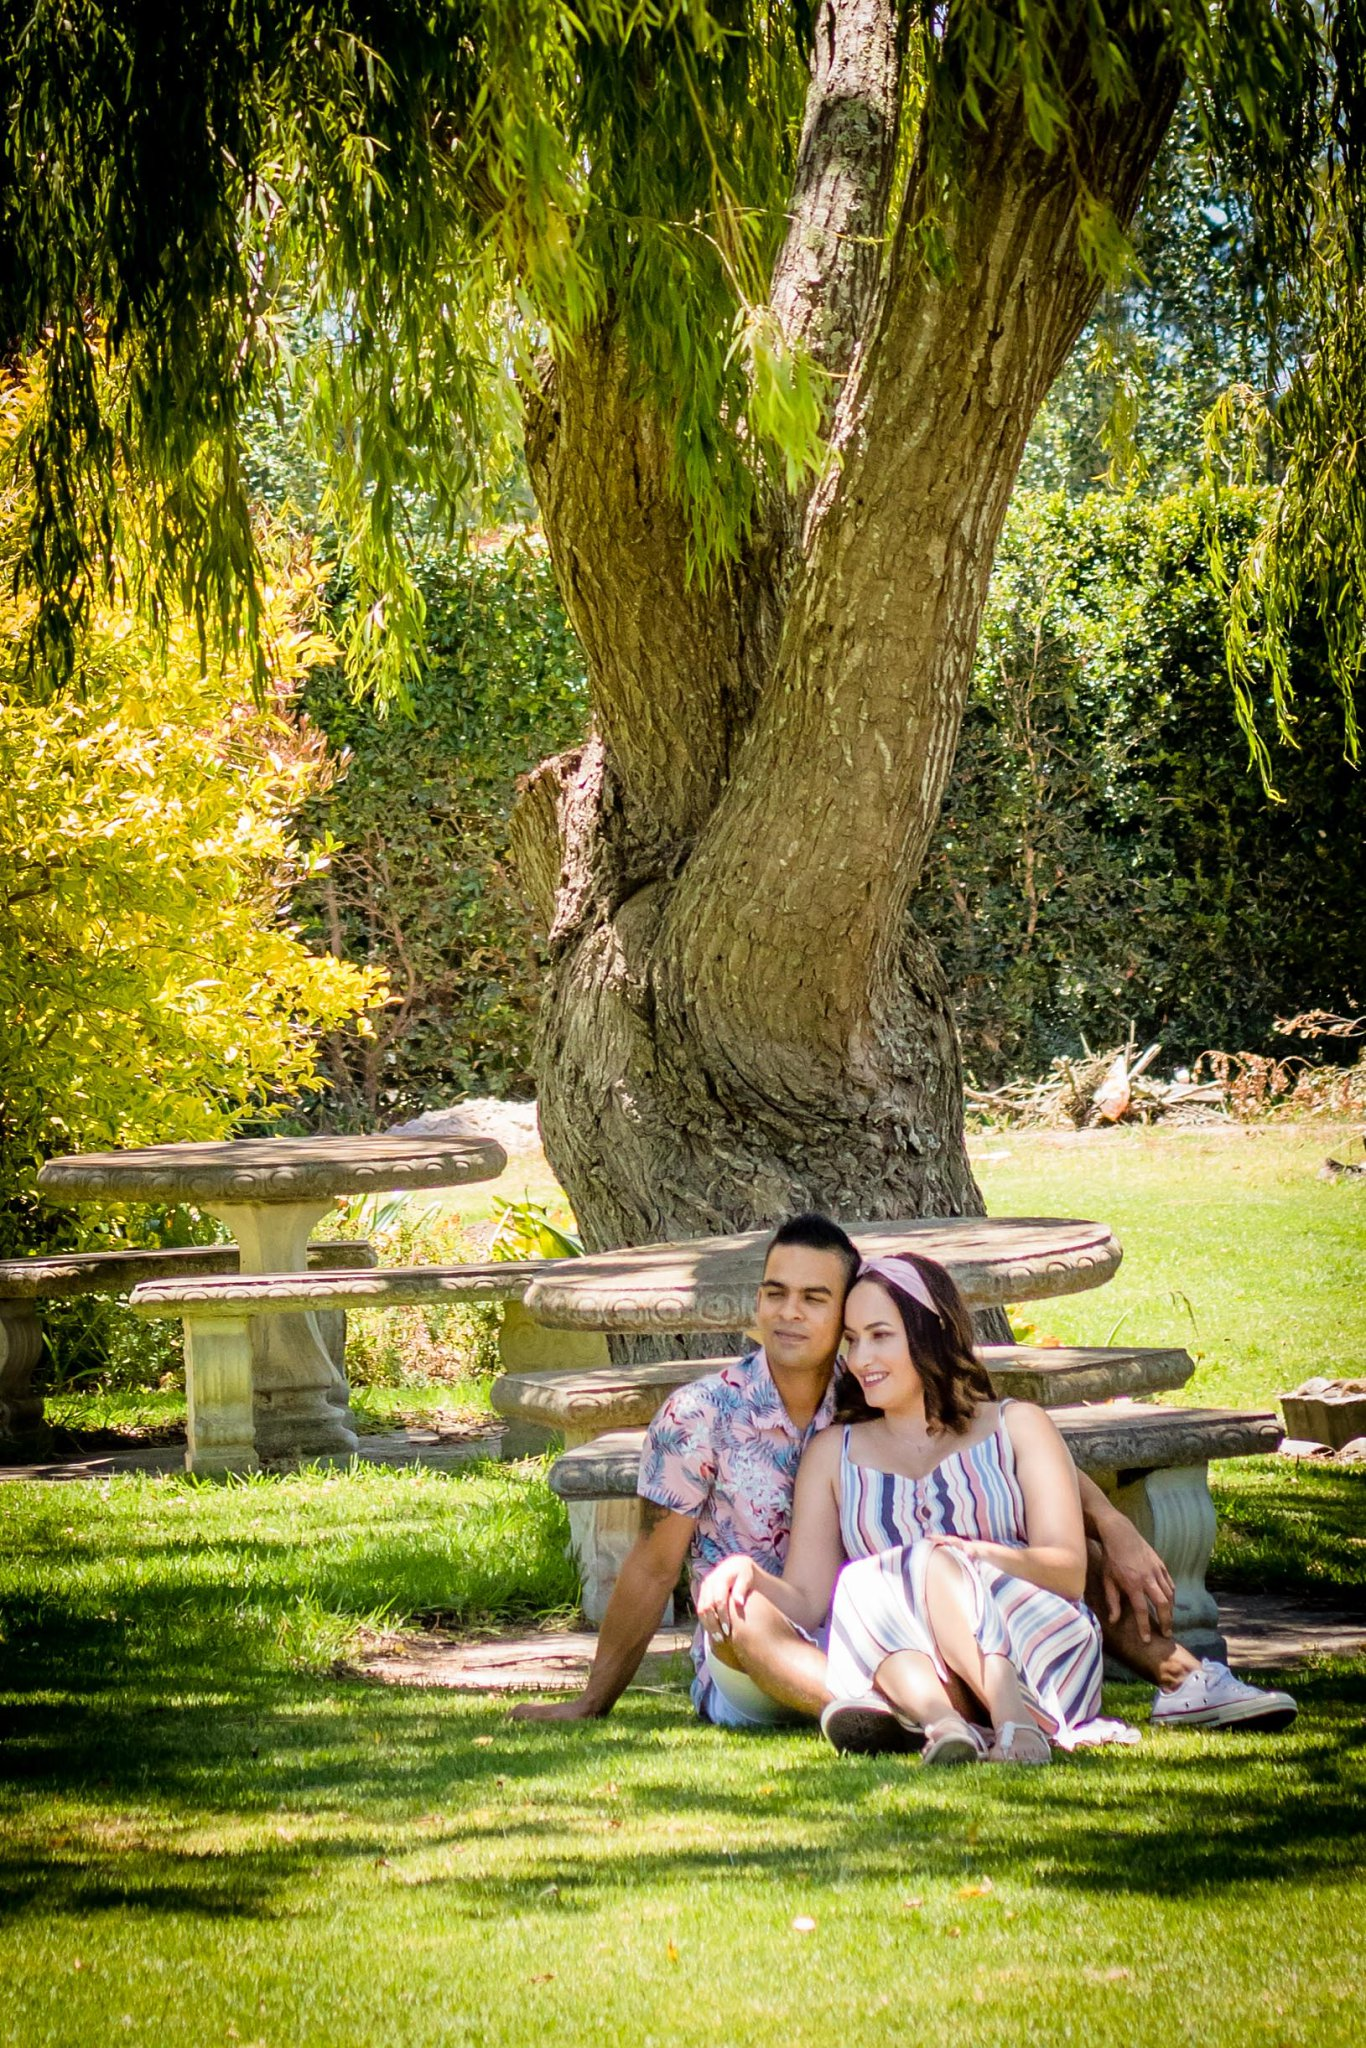 Engaged,Engagement,Engagement Photo,Photography,Photoshoot,Proposal,SamArendsePhotography,